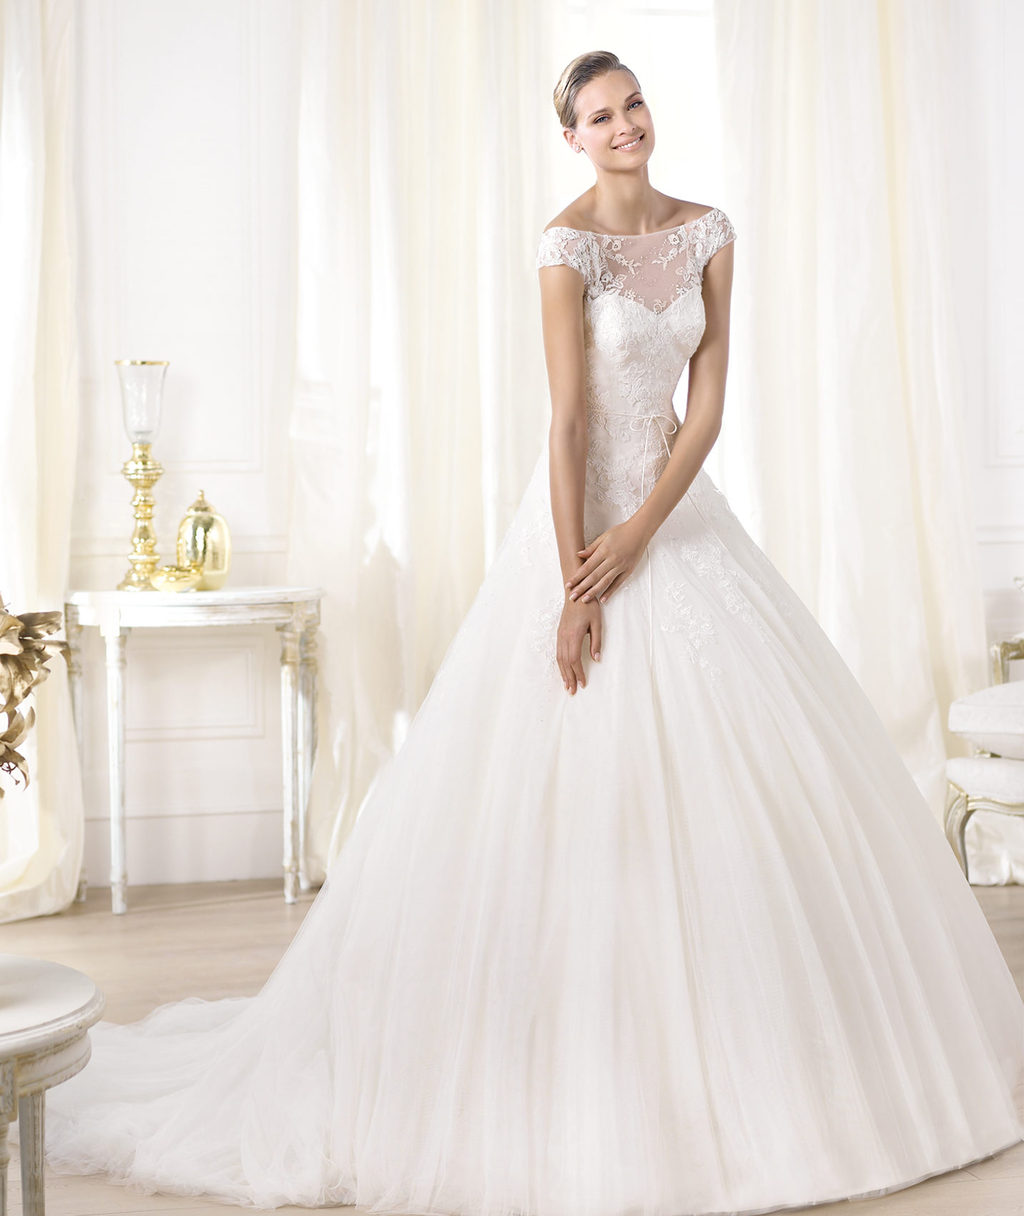 Pronovias wedding dress pre 2014 Glamour bridal collection Leonela